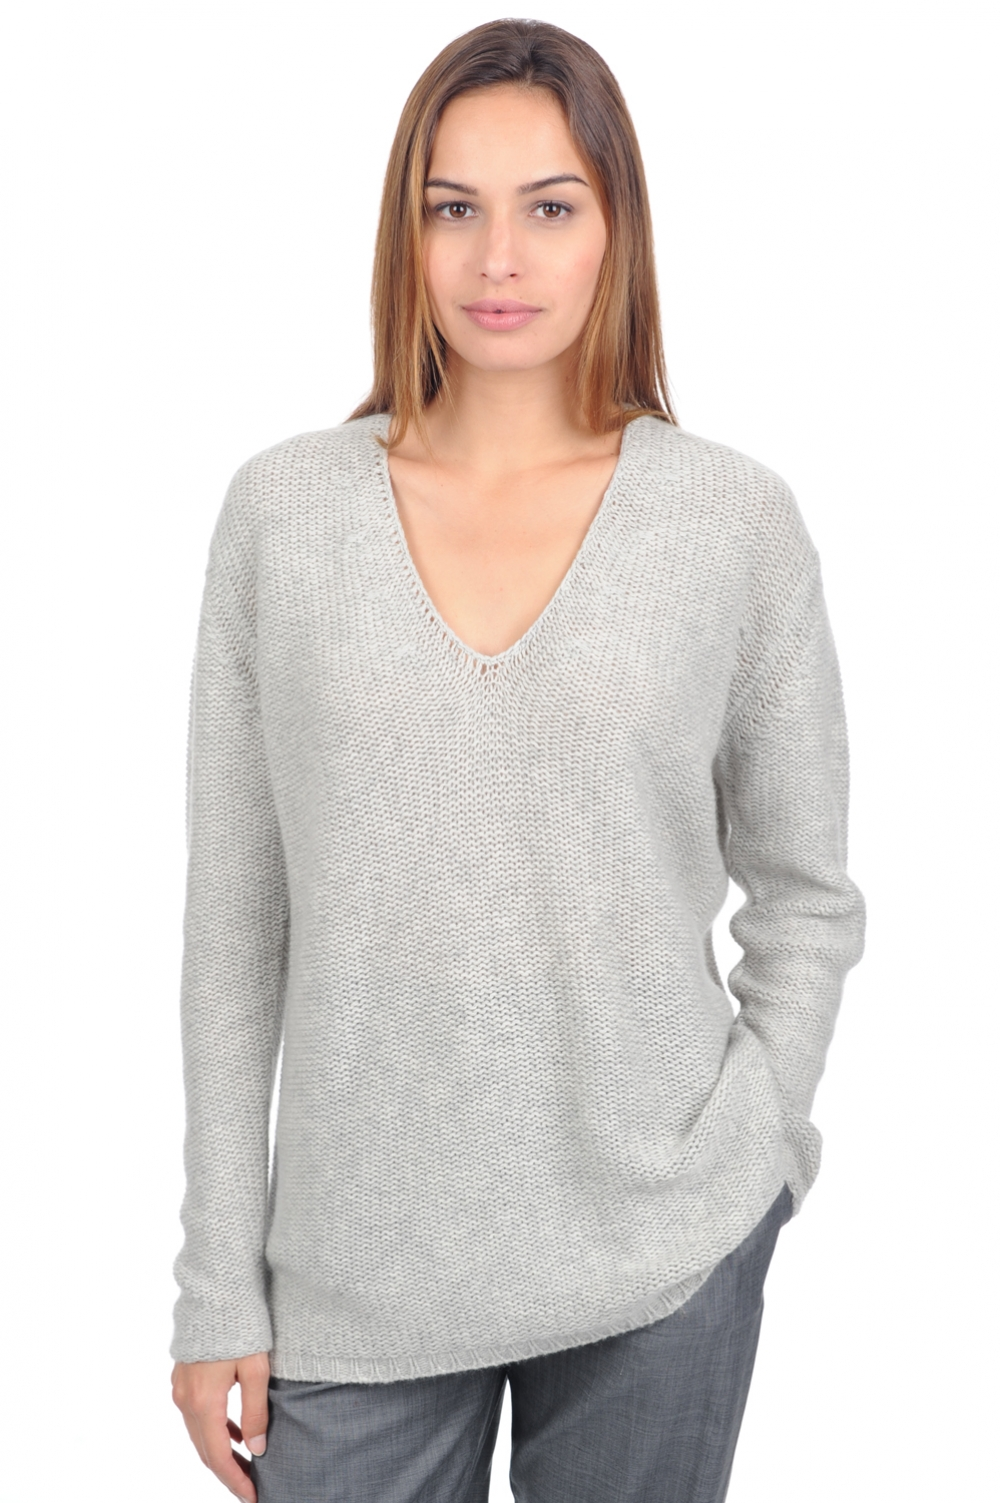 Cashmere ladies v necks oshak flanelle chine s1